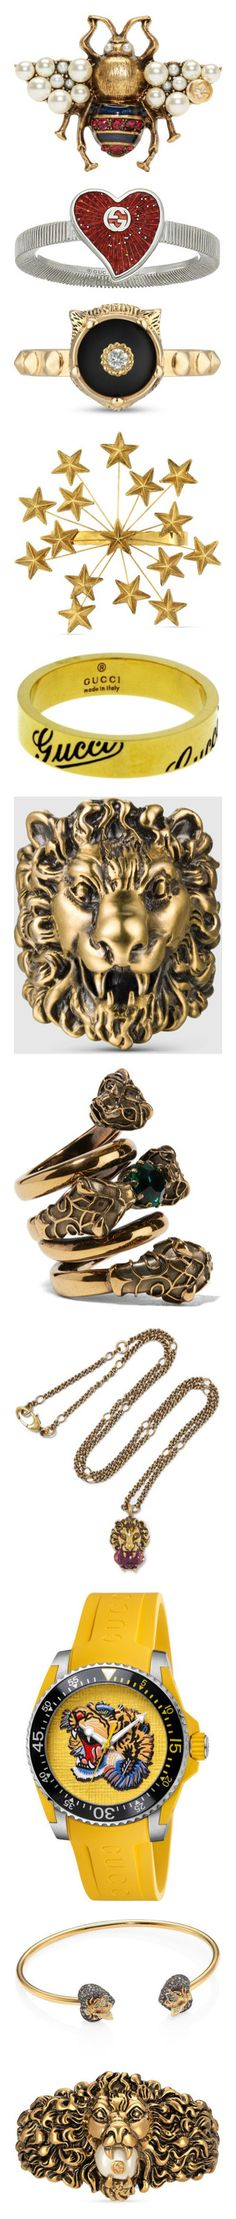 """""""Gucci 2.0"""" by mehrak ❤ liked on Polyvore featuring jewelry, rings, accessories, brooch, pins, gold, bee ring, gold rings, gucci ring and yellow gold rings"""